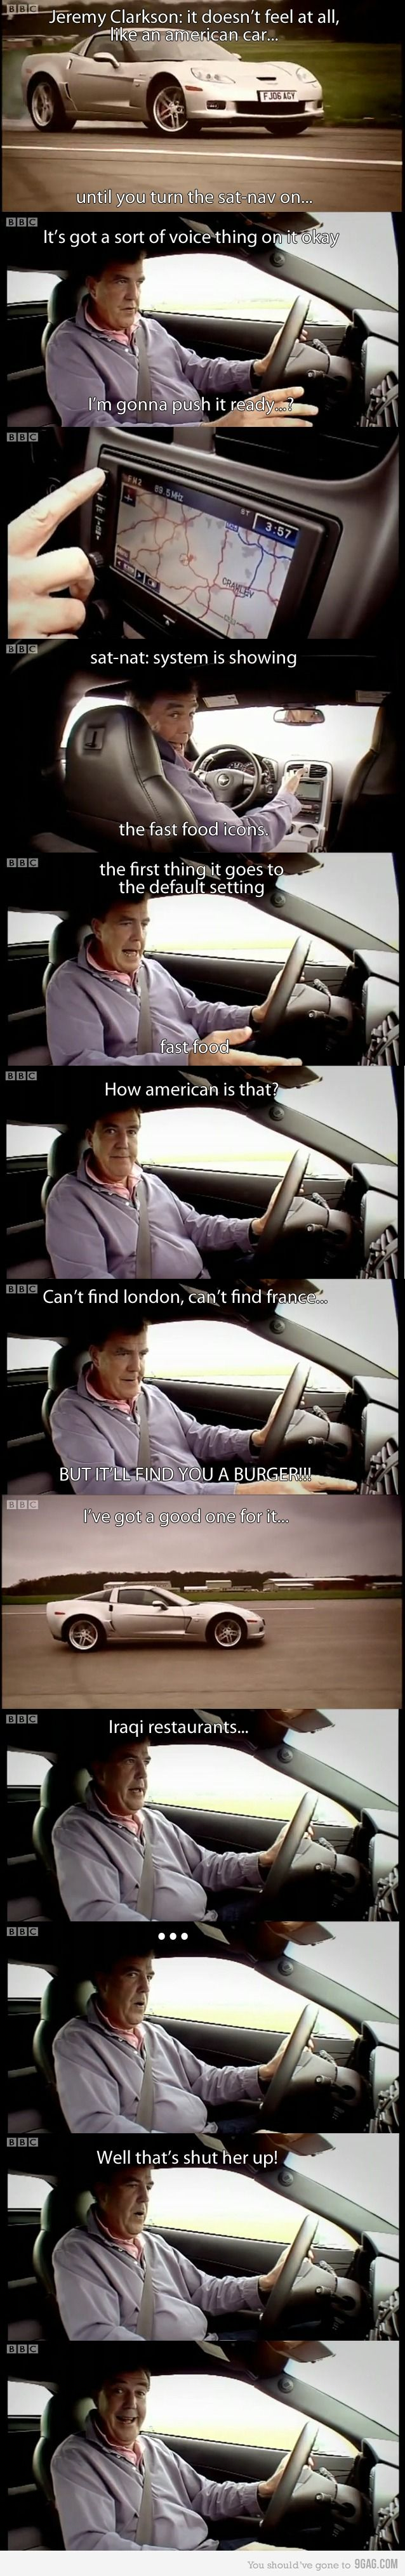 top gear! It's especially funny if you watch he show and can hear his voice as you read it.